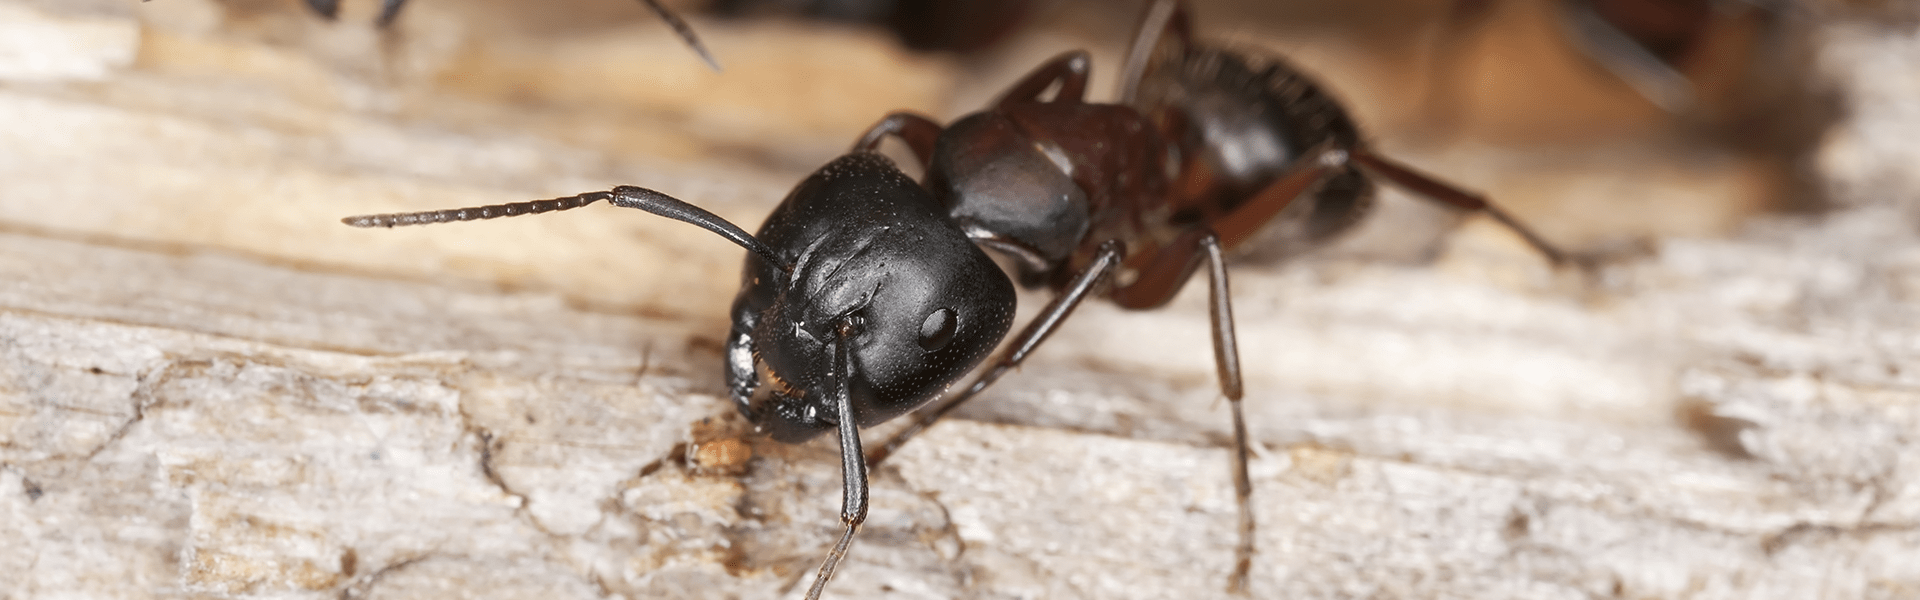 ant control for homes in Indiana, Kentucky, and Illinois